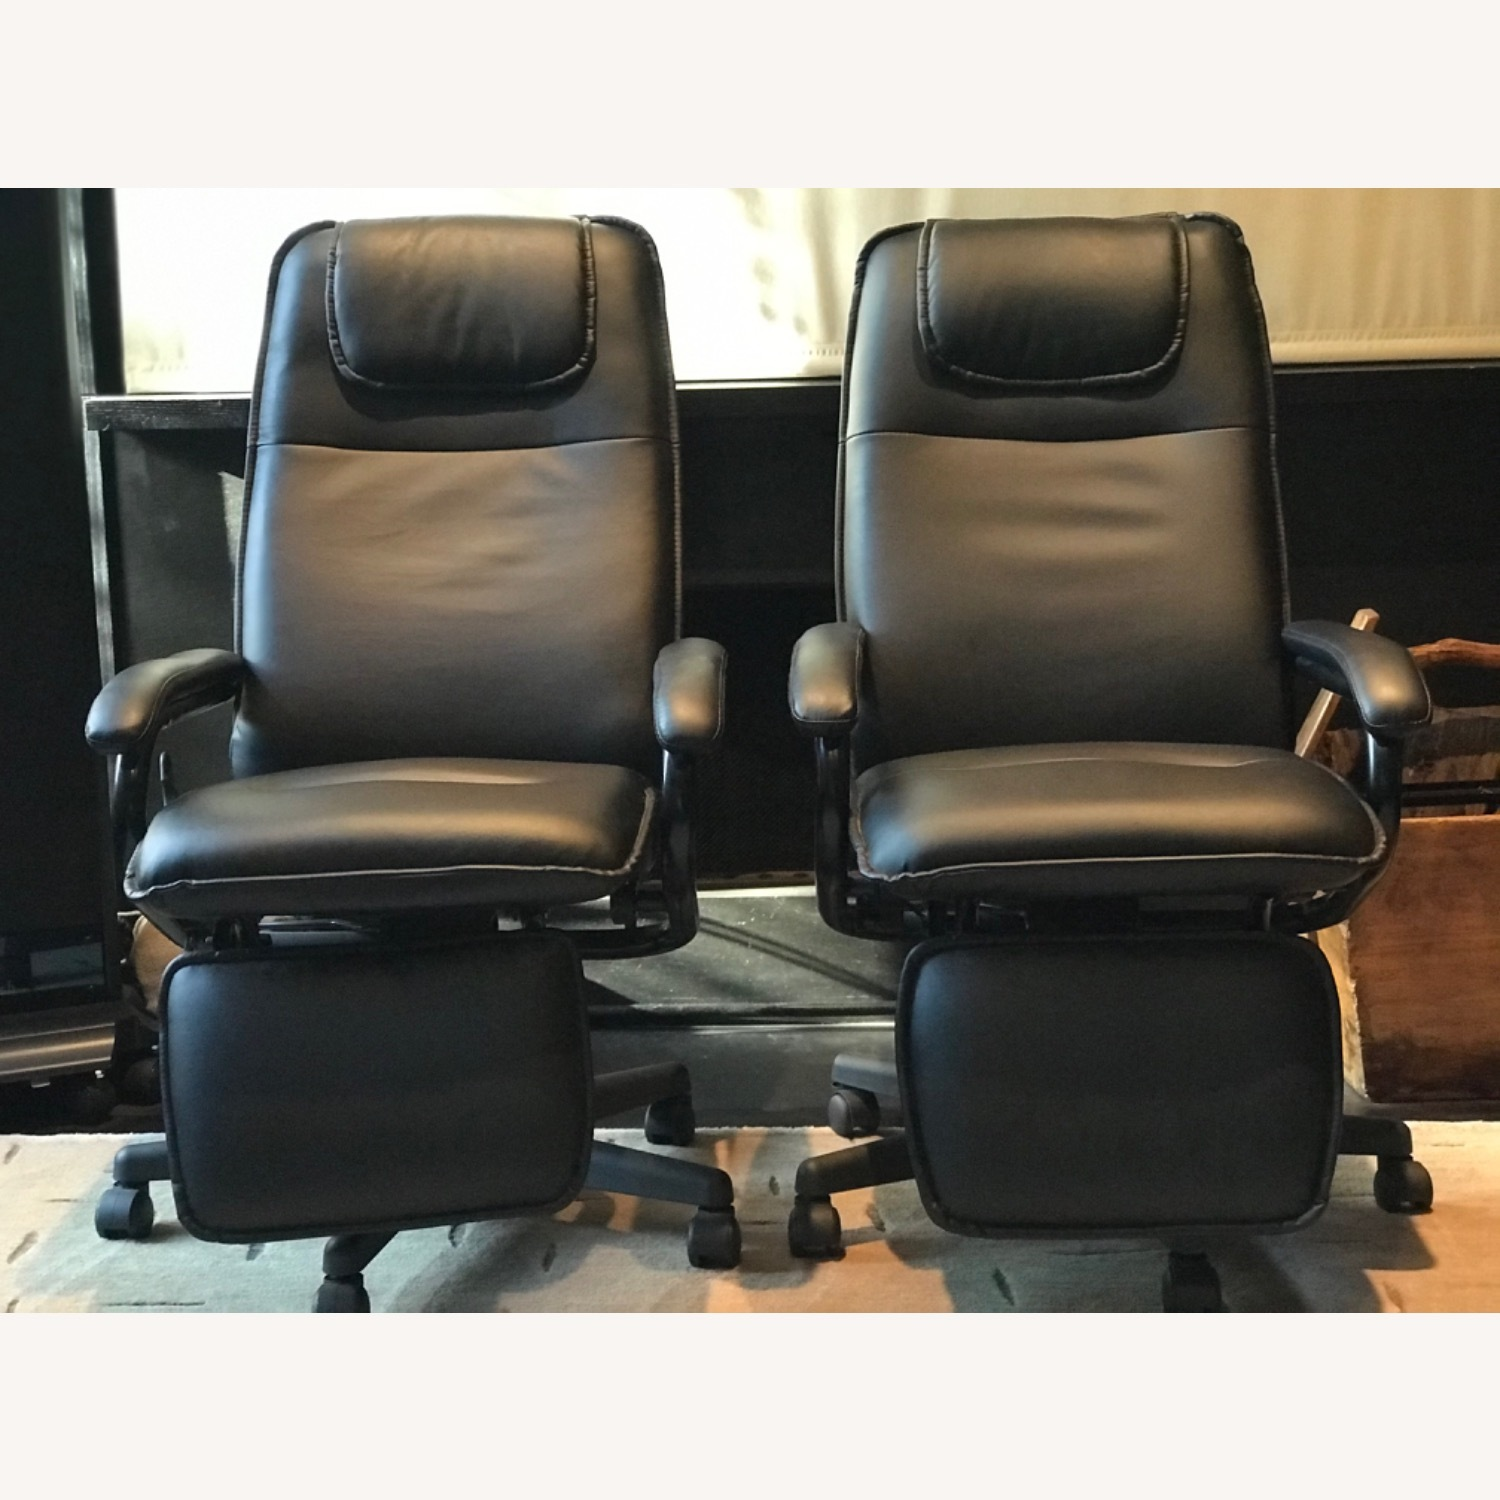 Reclining Swivel Chairs with Foot Rests - image-3